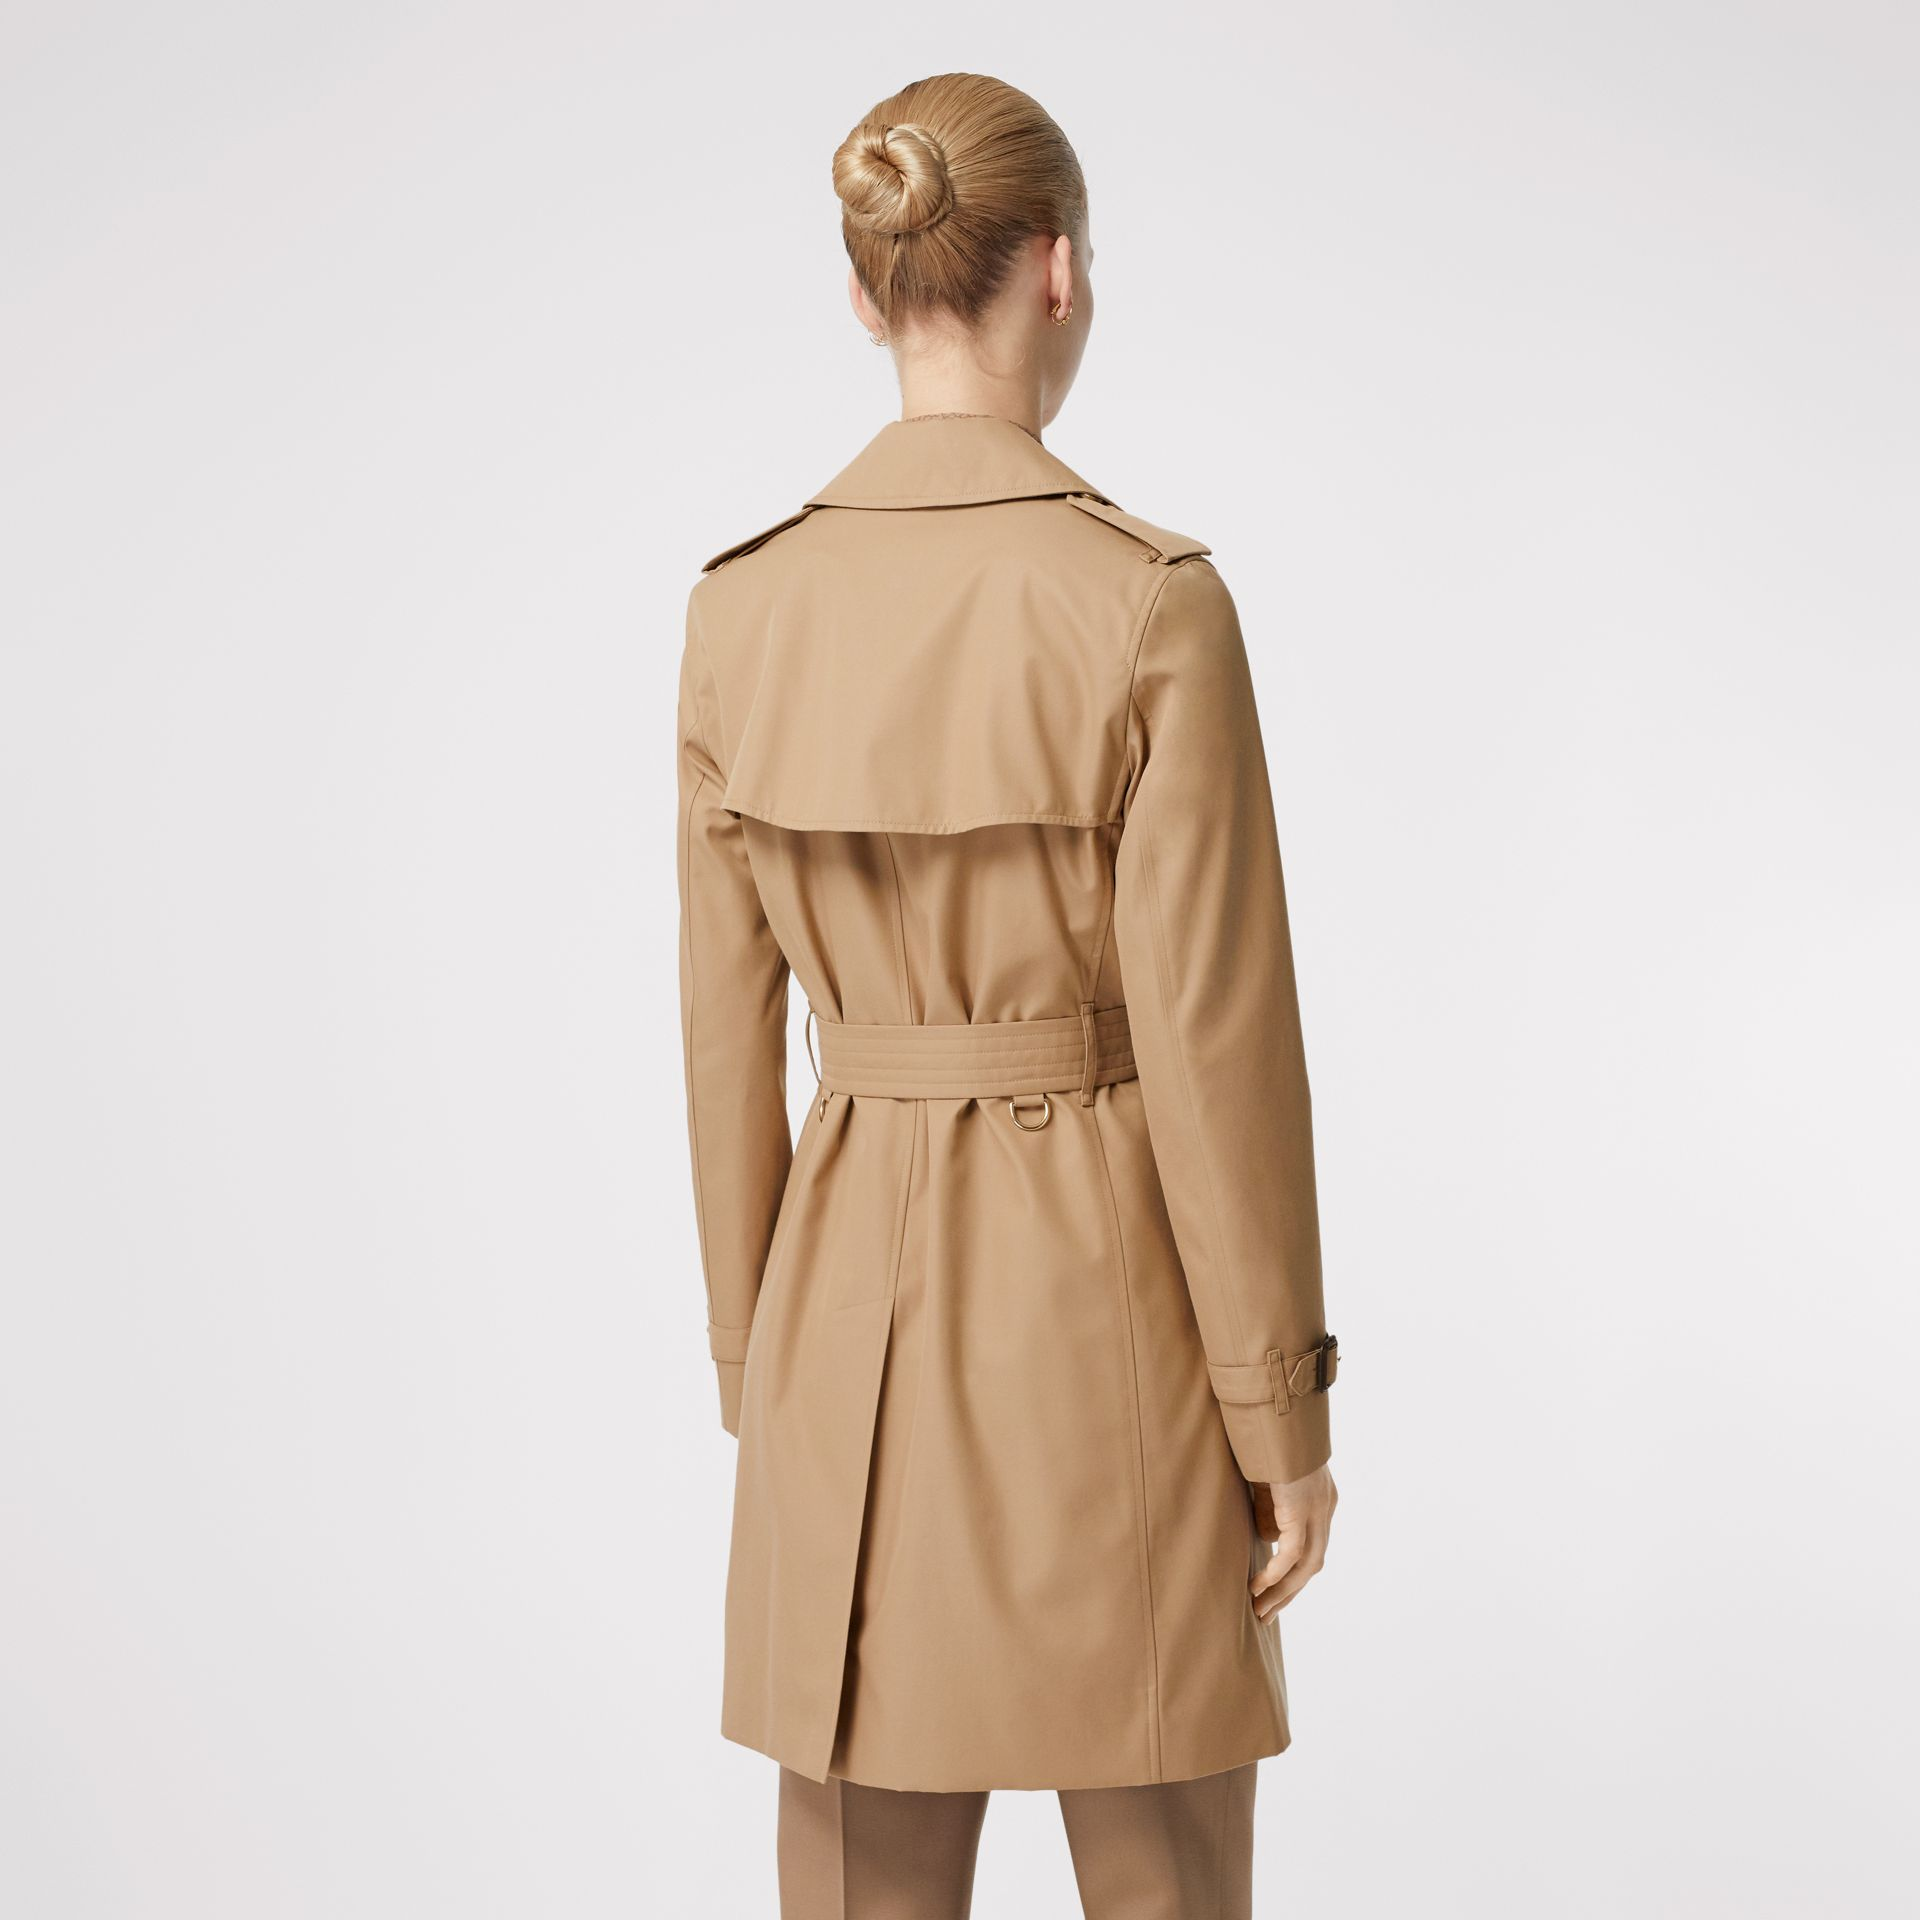 Cotton Gabardine Trench Coat in Biscuit - Women | Burberry - gallery image 2